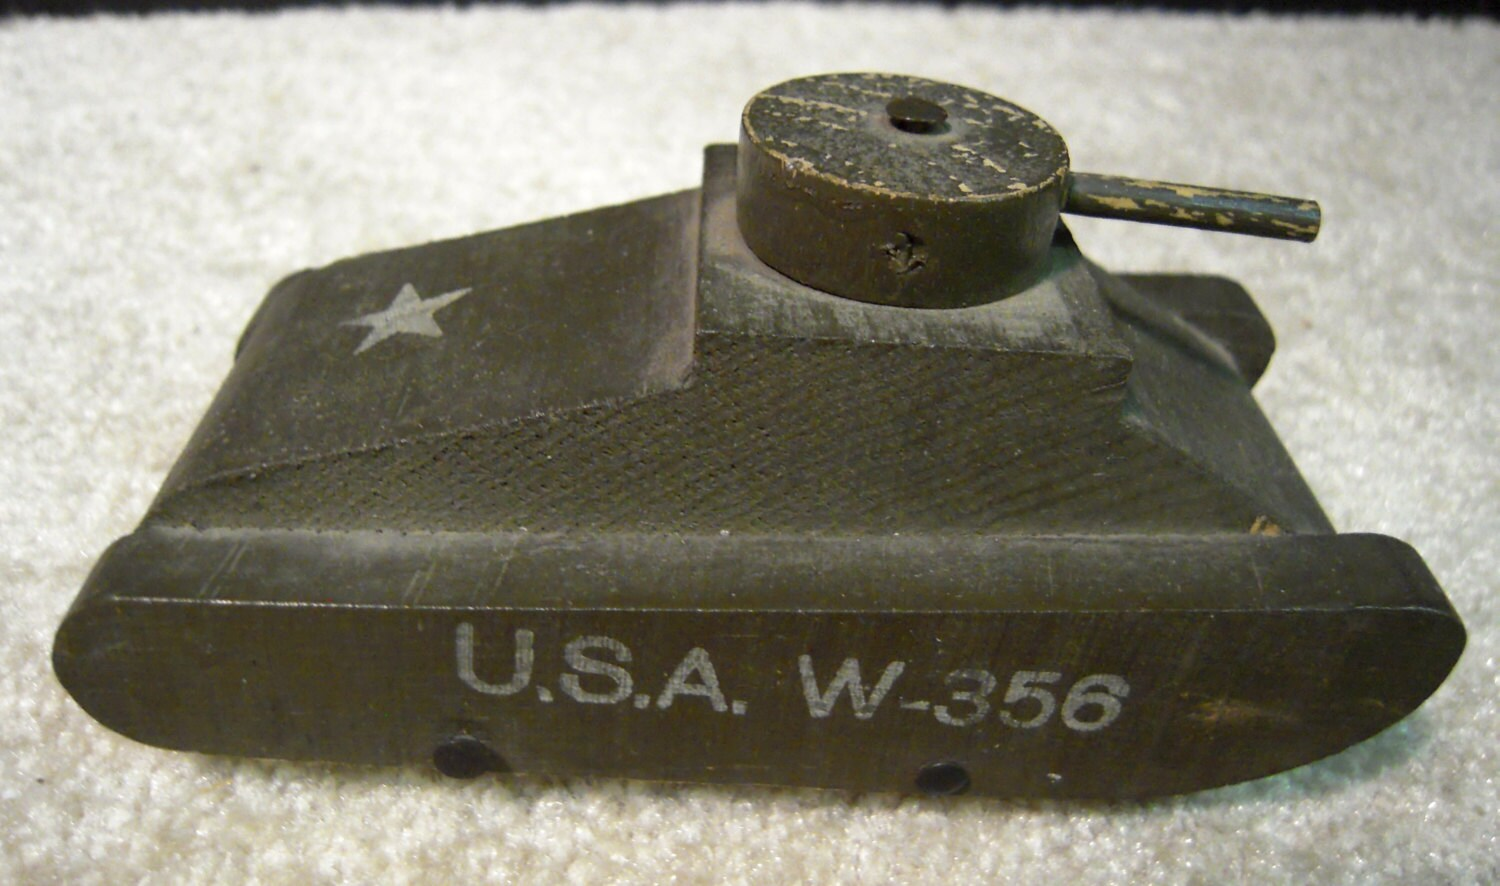 Vintage wood toy army tank usa w 356 by mimaleslie on etsy